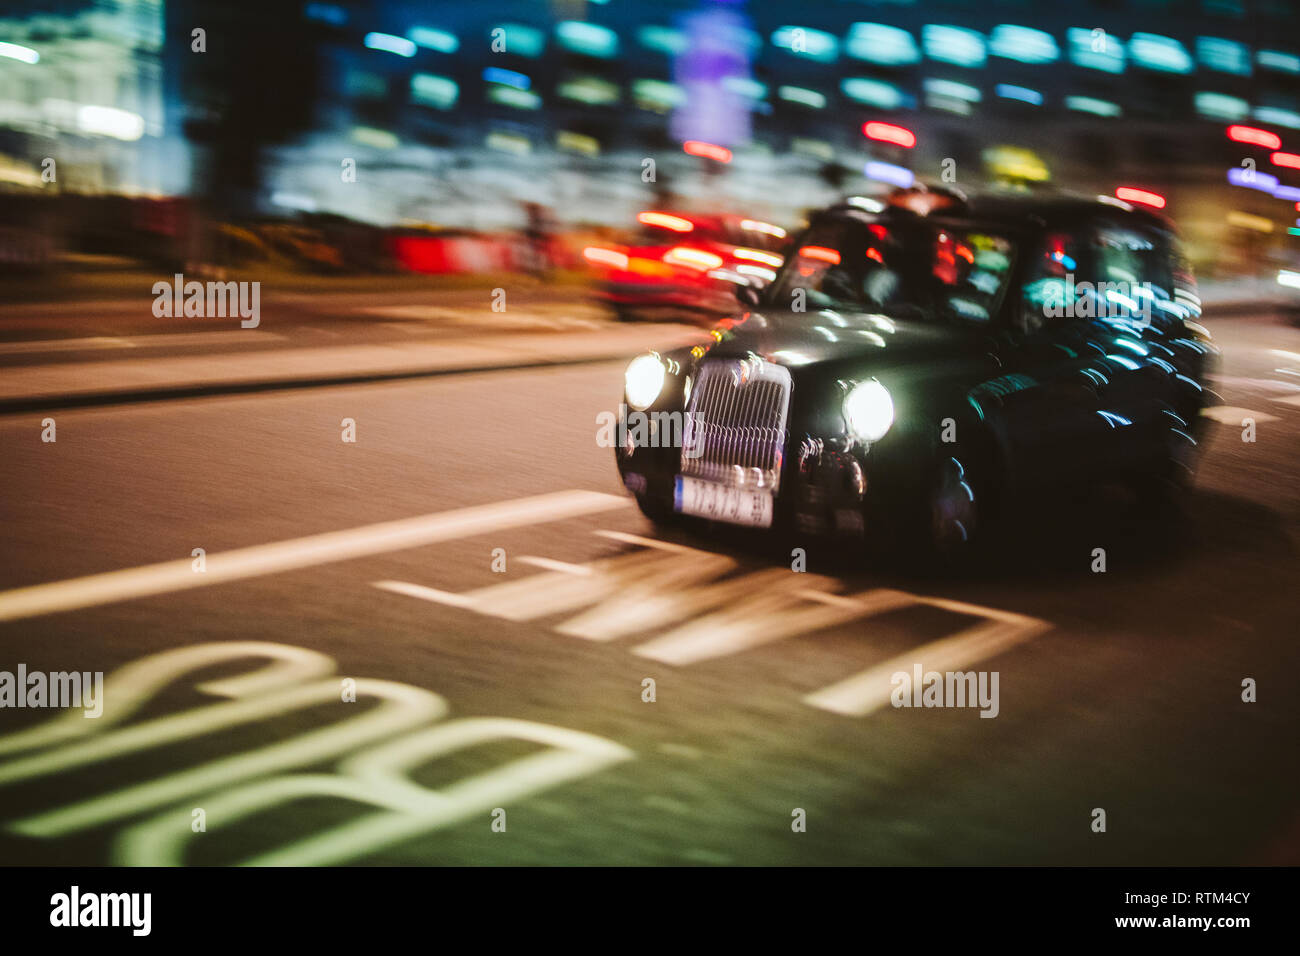 Abstract defocused in motion British Taxi hackney carriage cab driving fast to destination on the London street at night - transportation business theme with defocused motion on Bus lane and bokeh - Stock Image